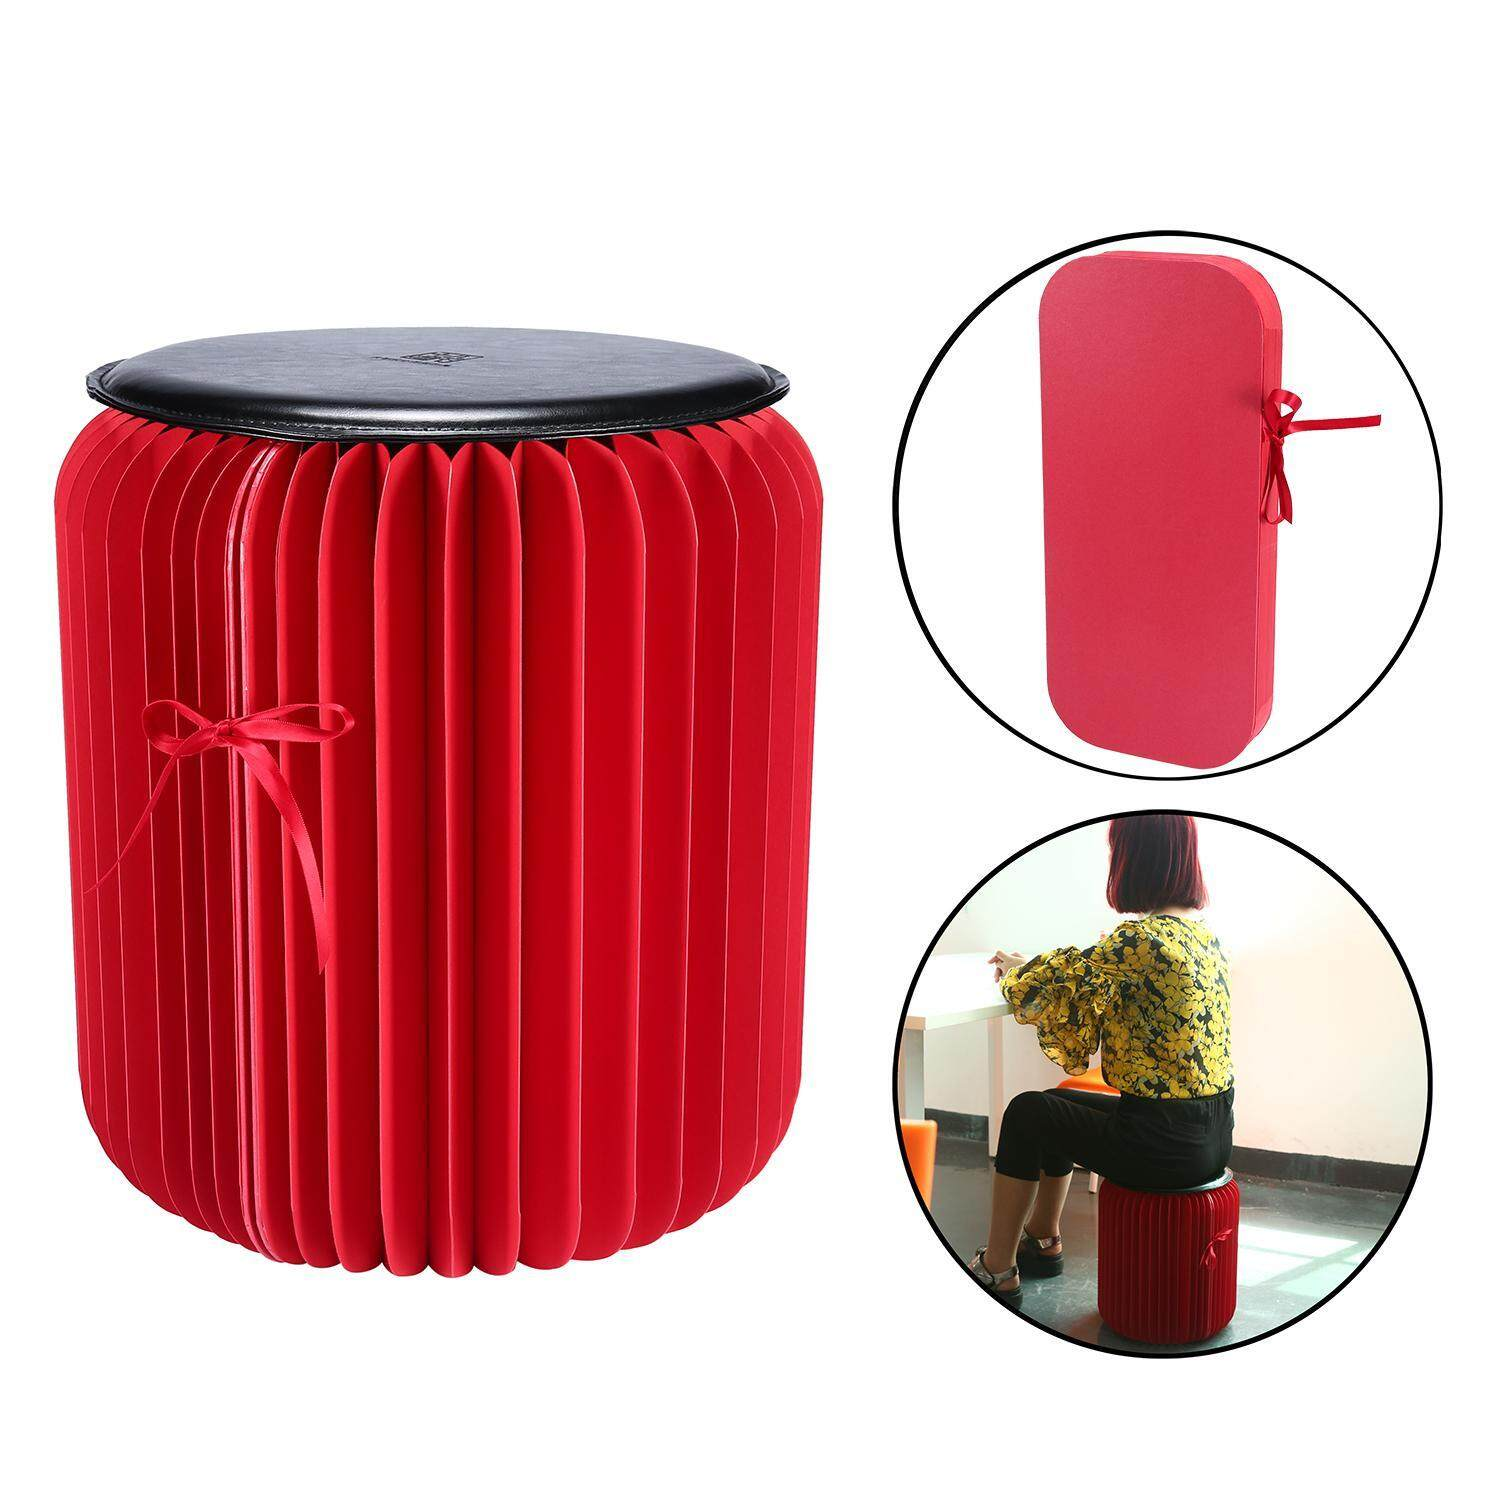 wuzeyu Flexible Paper Stool,Portable Home Furniture Paper Design Folding Chair With 1pcs Leather Pad,Red+Black Large Size - intl